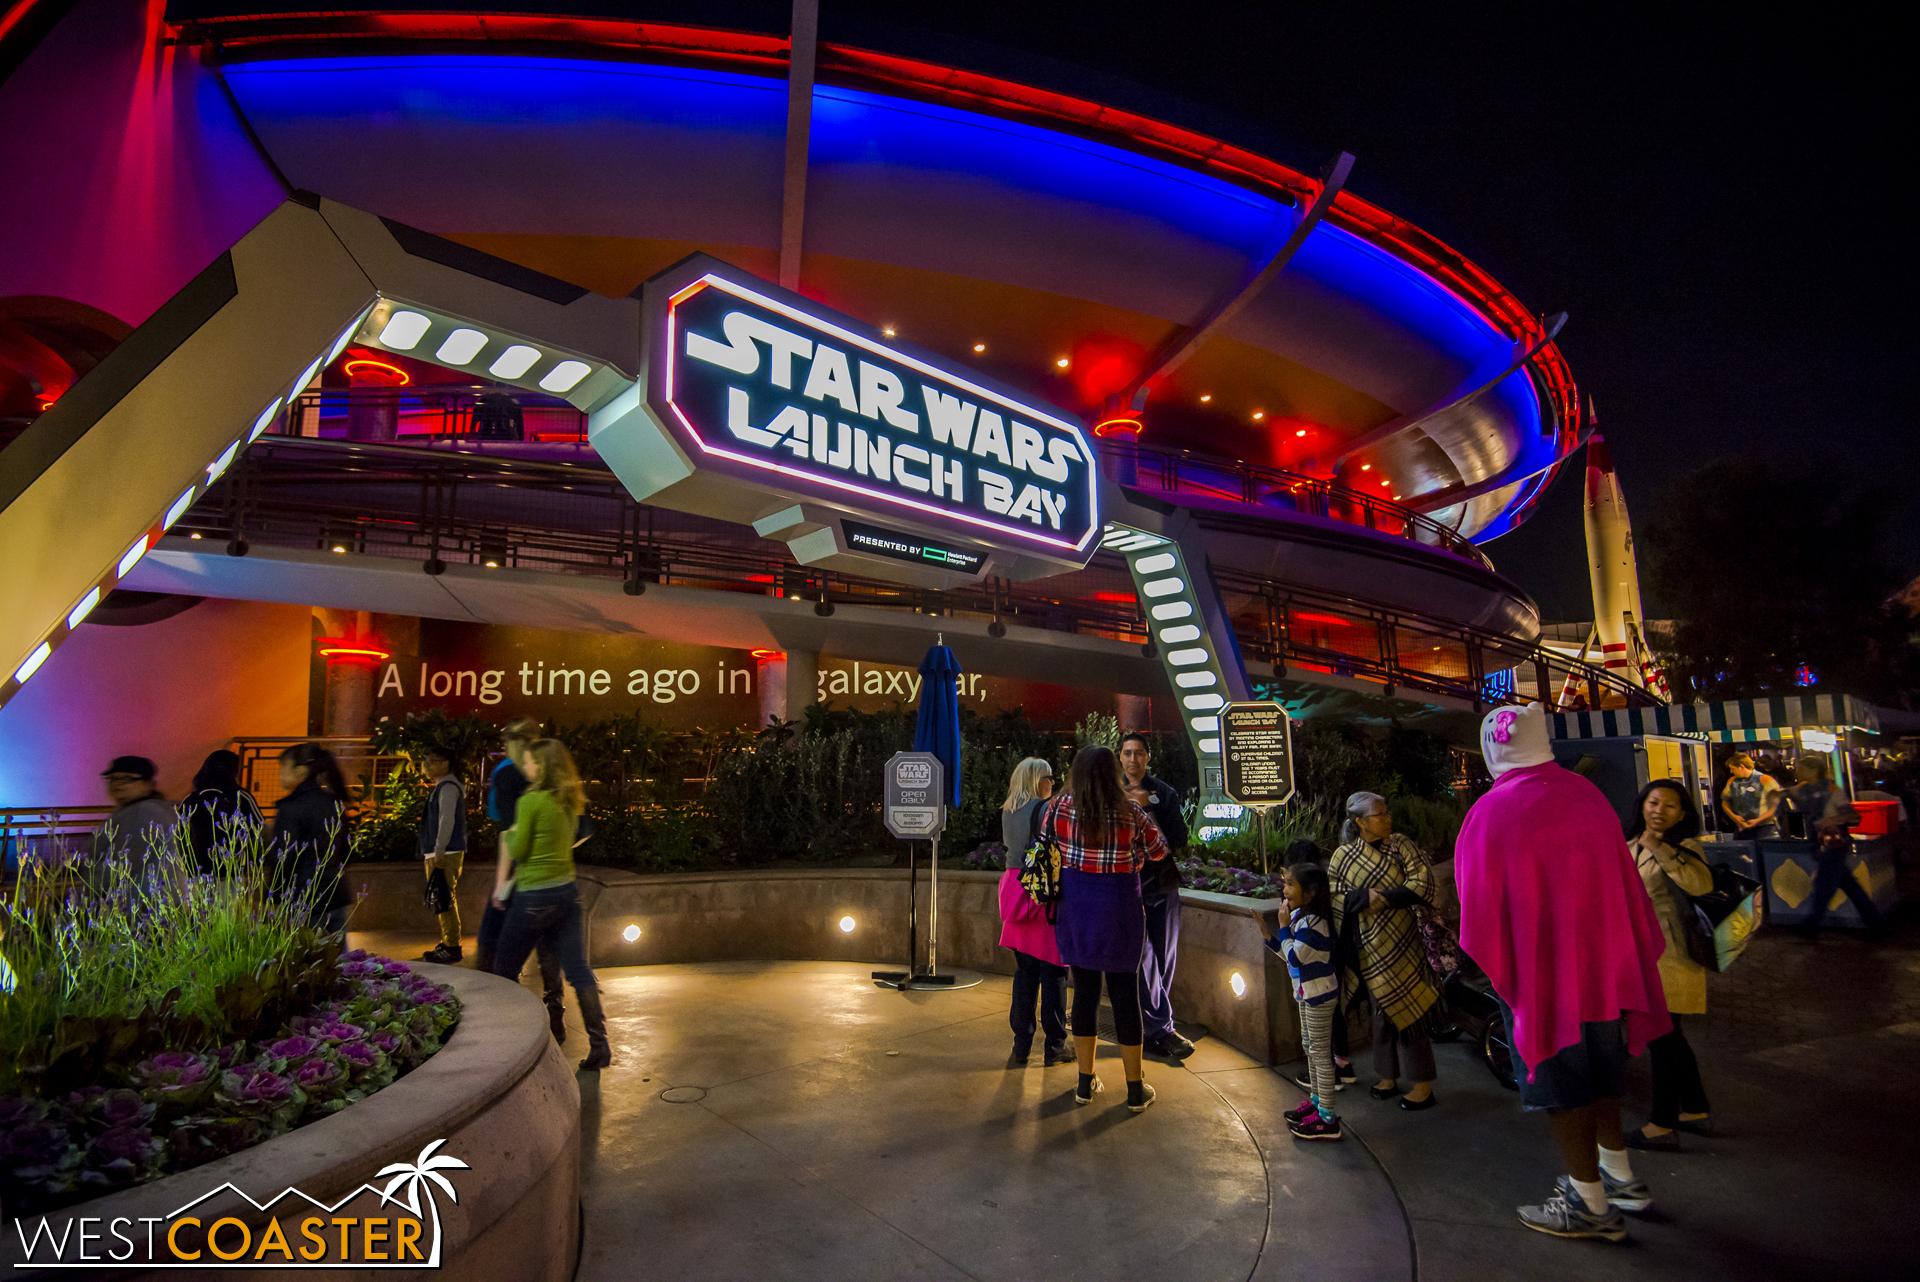 There is also Star Wars Launch Bay.